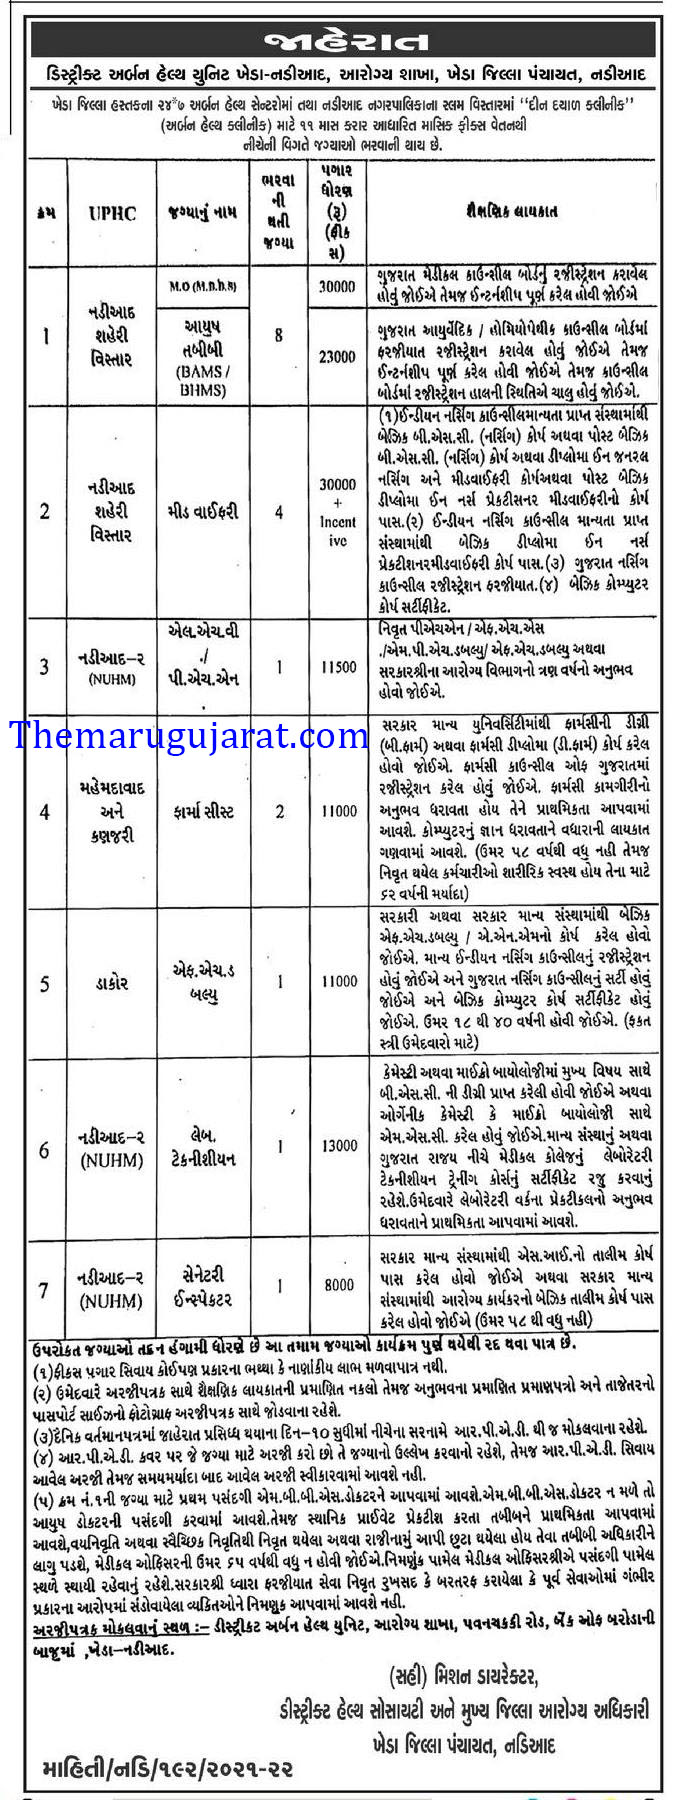 District Urban Health Unit Kheda-Nadiad Recruitment For SI, Midwifery & Other Posts 2021